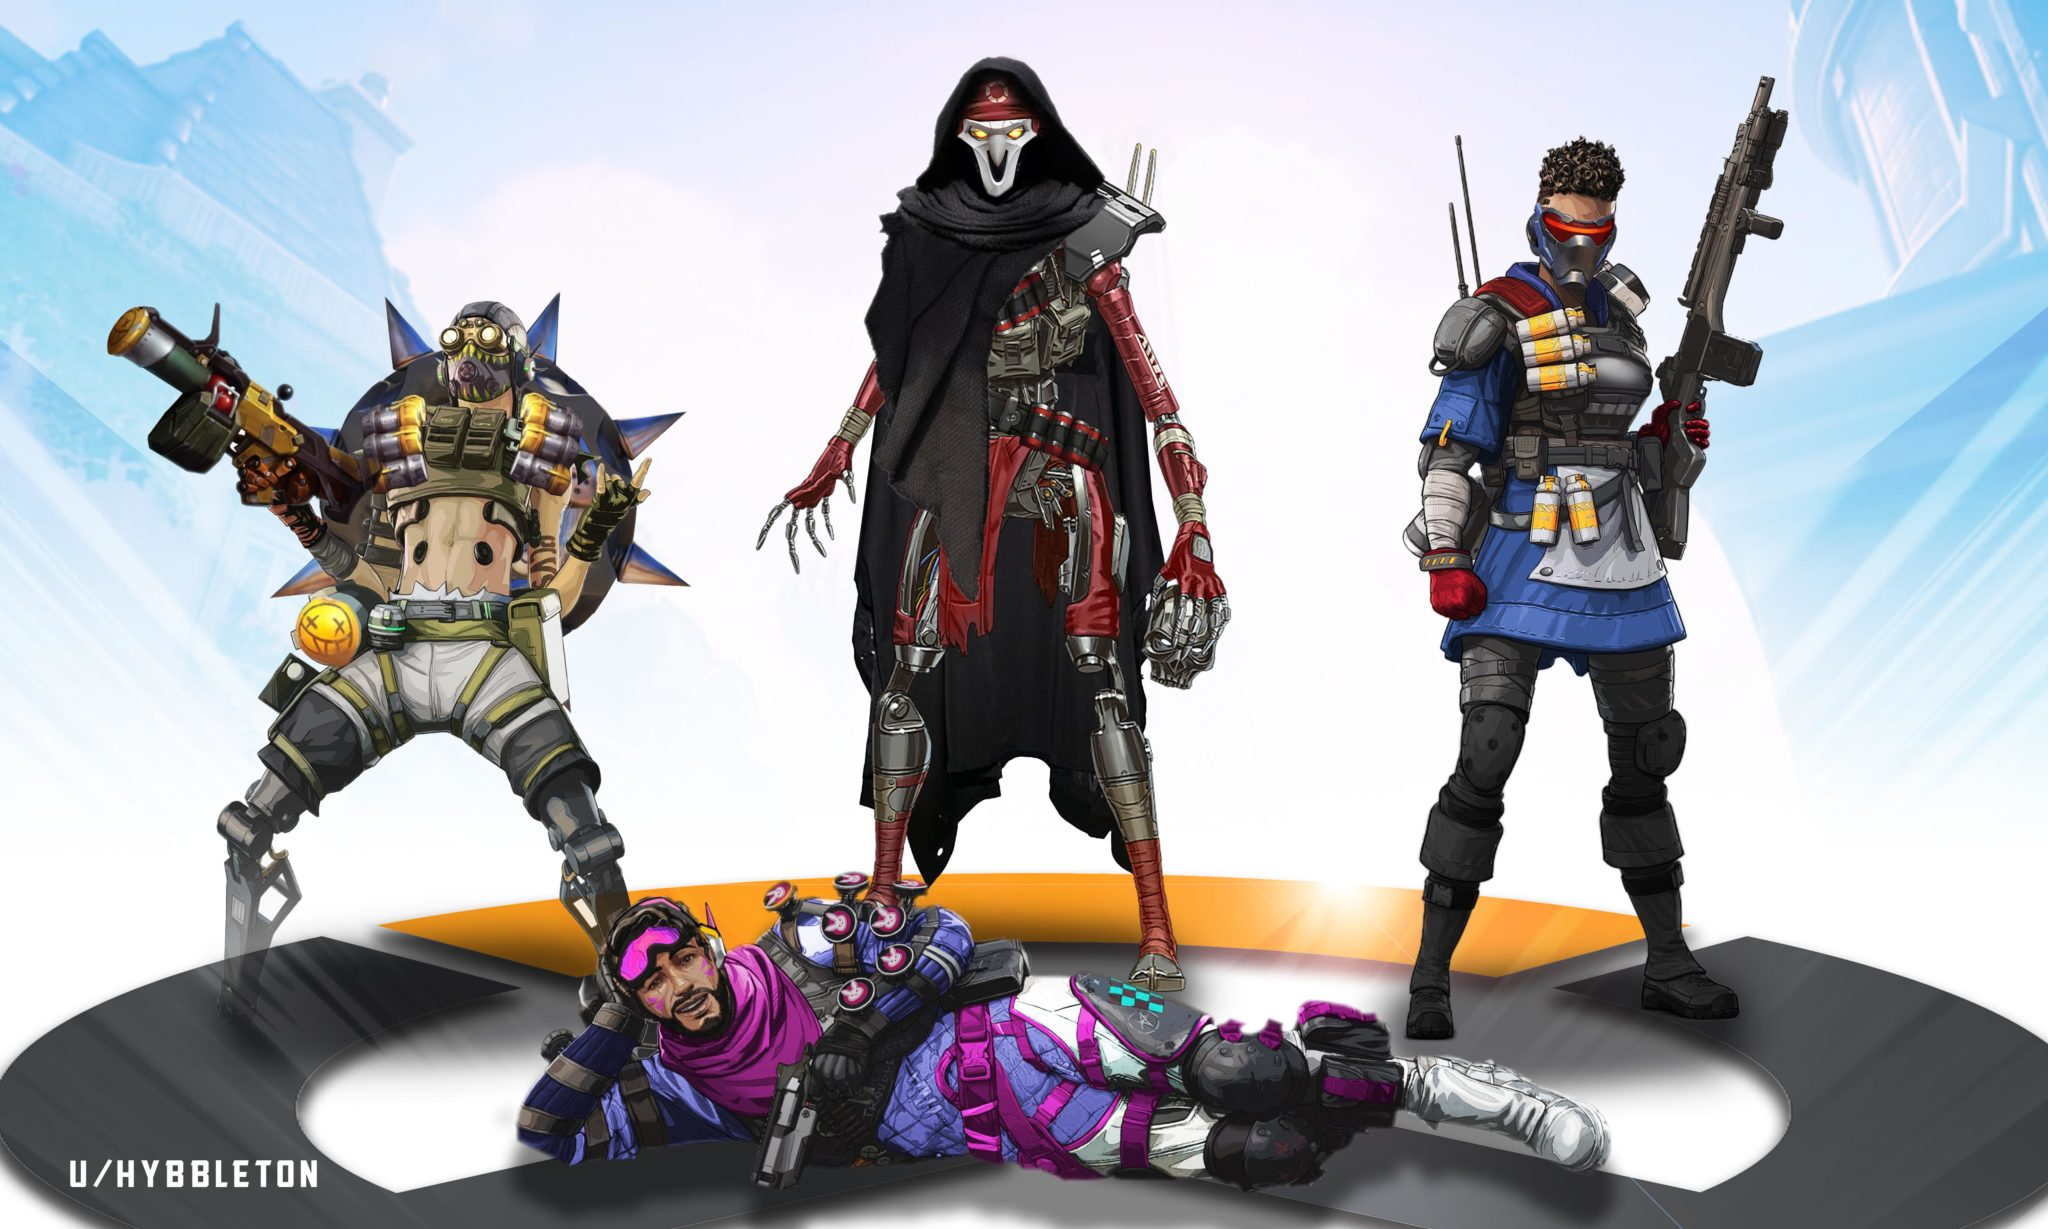 Apex Legends characters designed as Overwatch skins